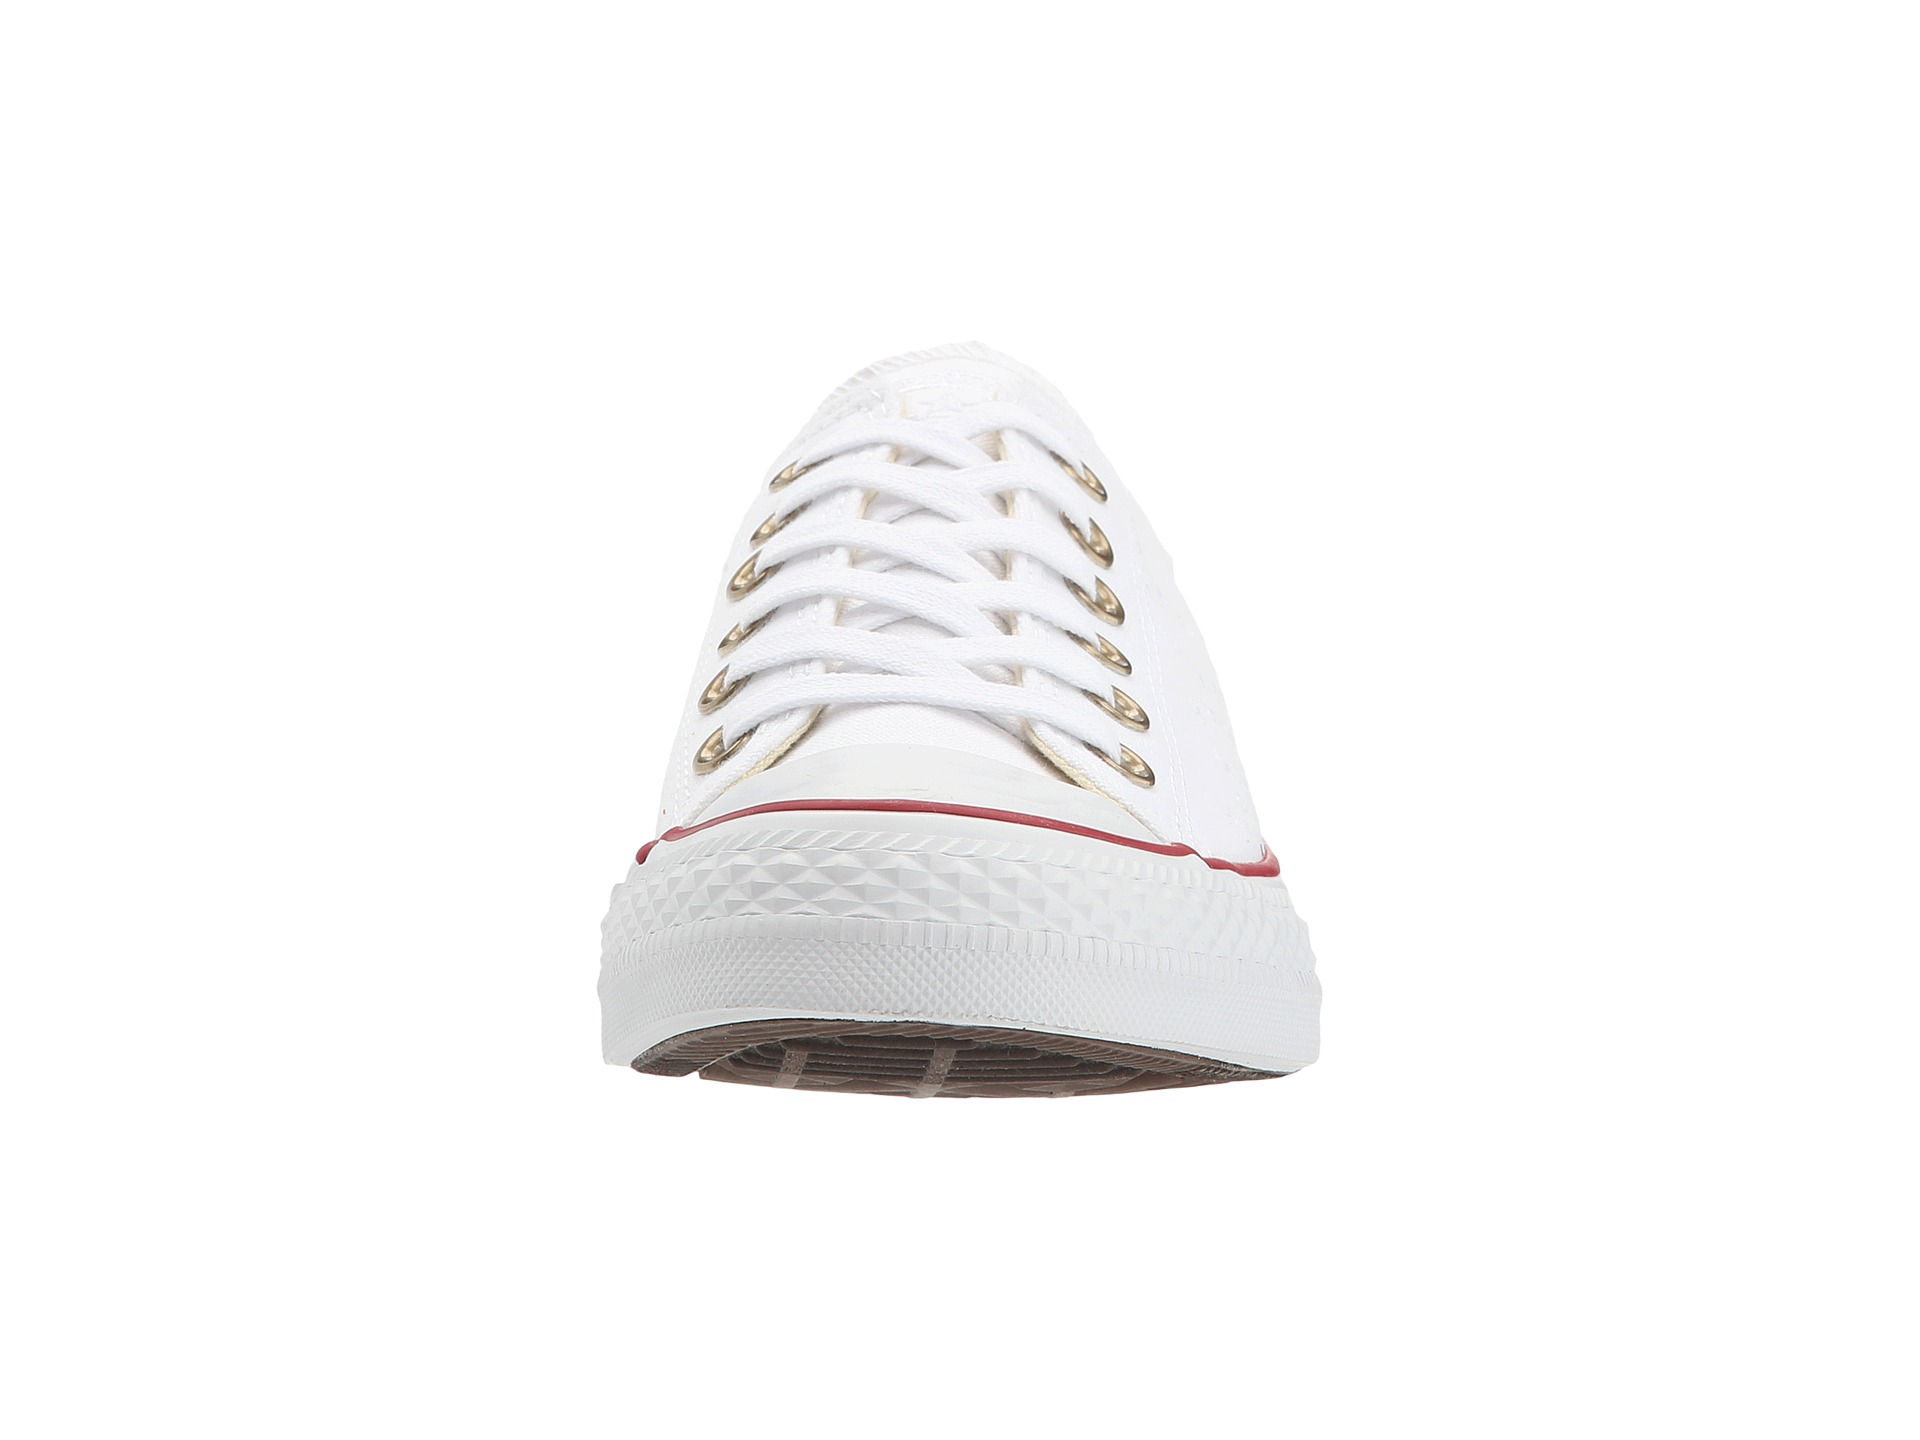 2351171724a4 30%OFF Converse Chuck Taylor All Star Festival Embroidered Ox at ...